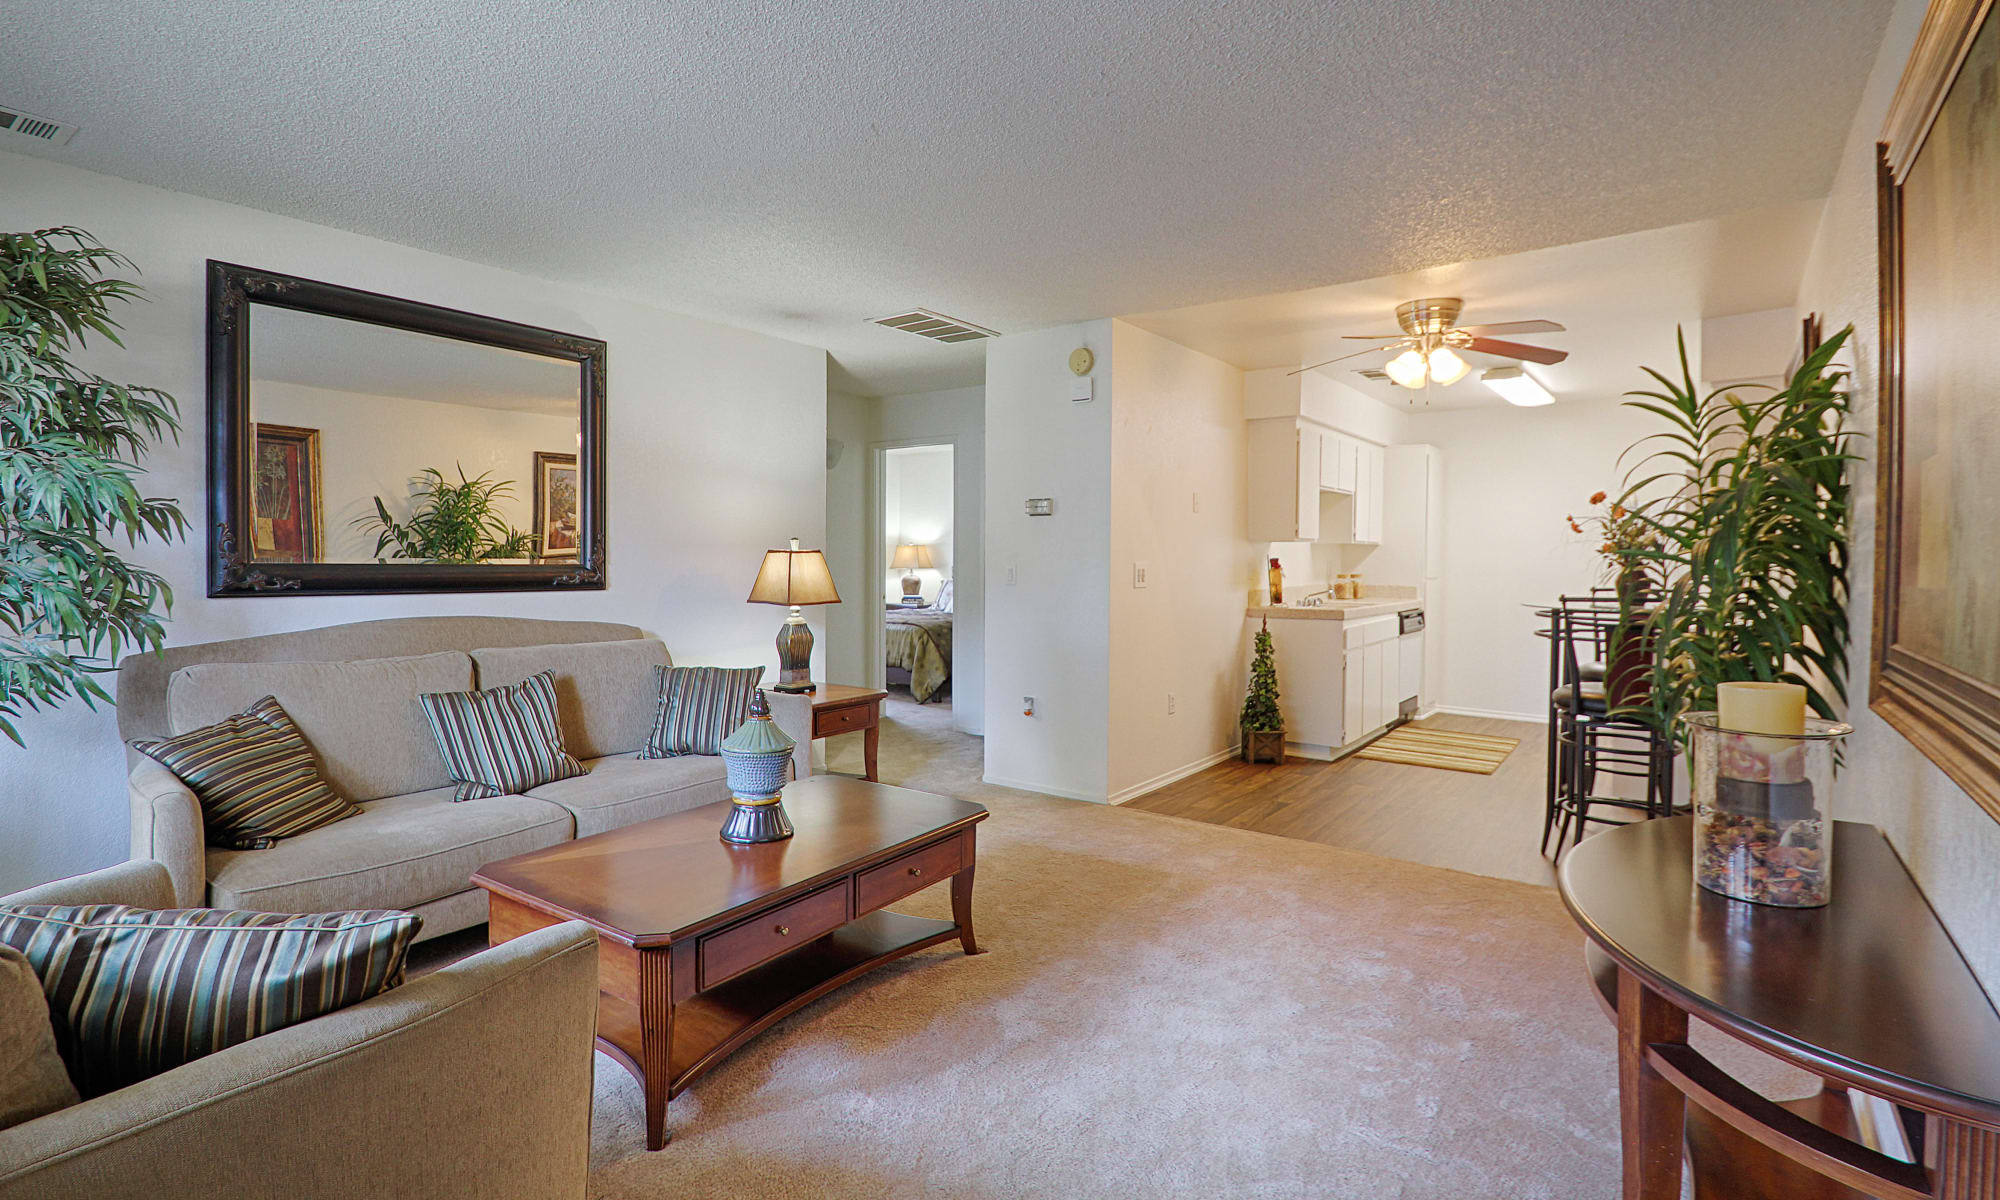 Learn more about Country Hills Apartment Homes in Corona, CA